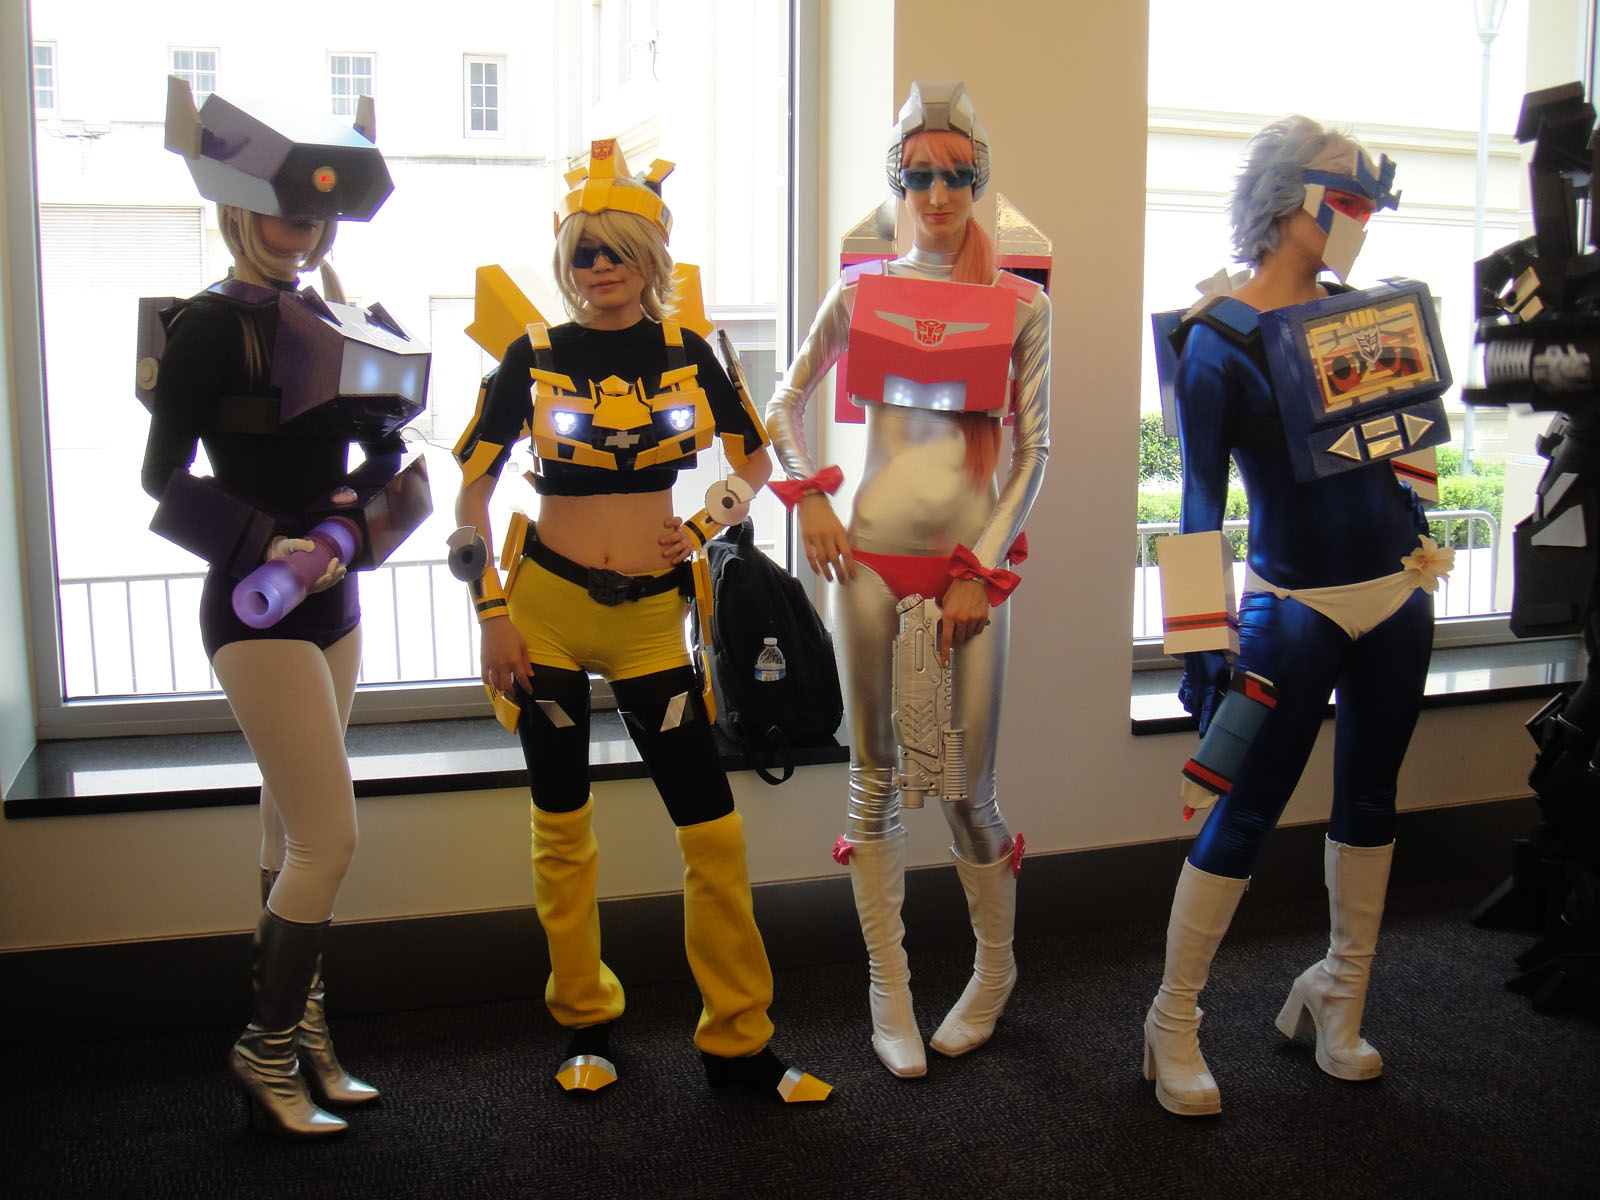 File Botcon 2011 Transformers Cosplay Robot Girls 5802061115 Jpg